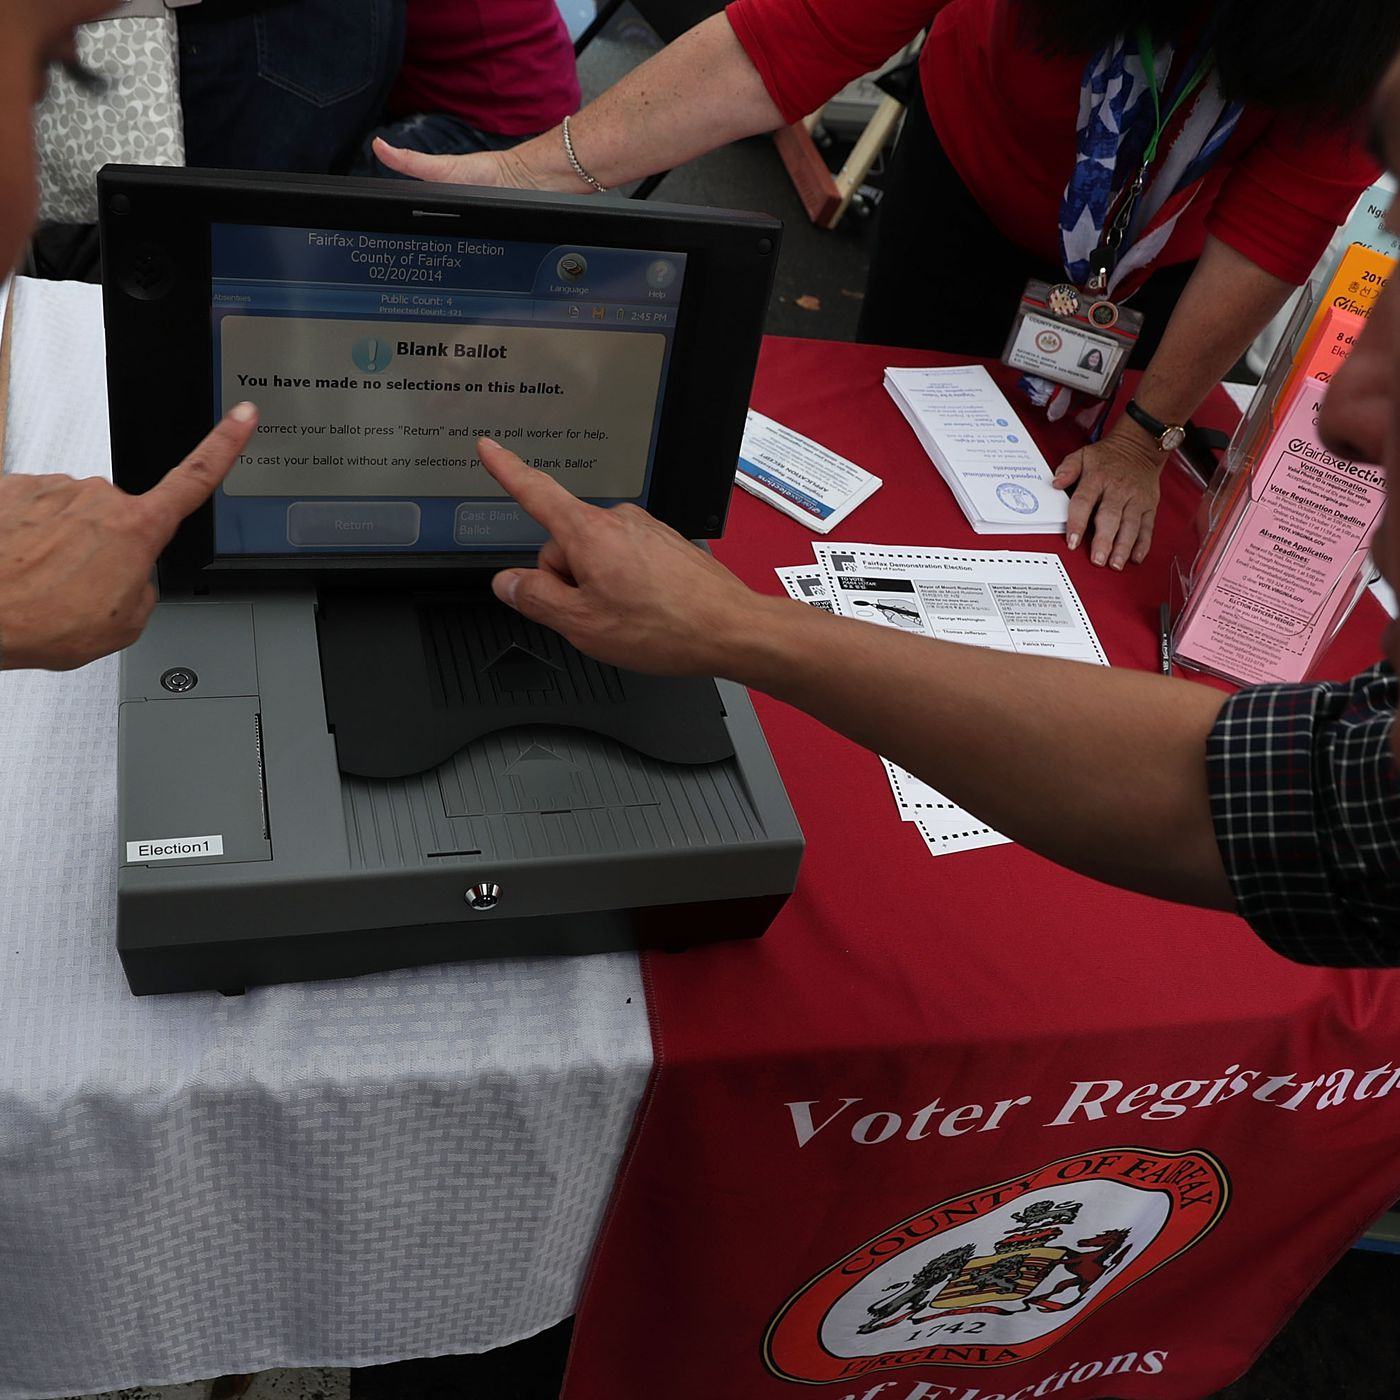 Virginia is replacing some of its electronic voting machines